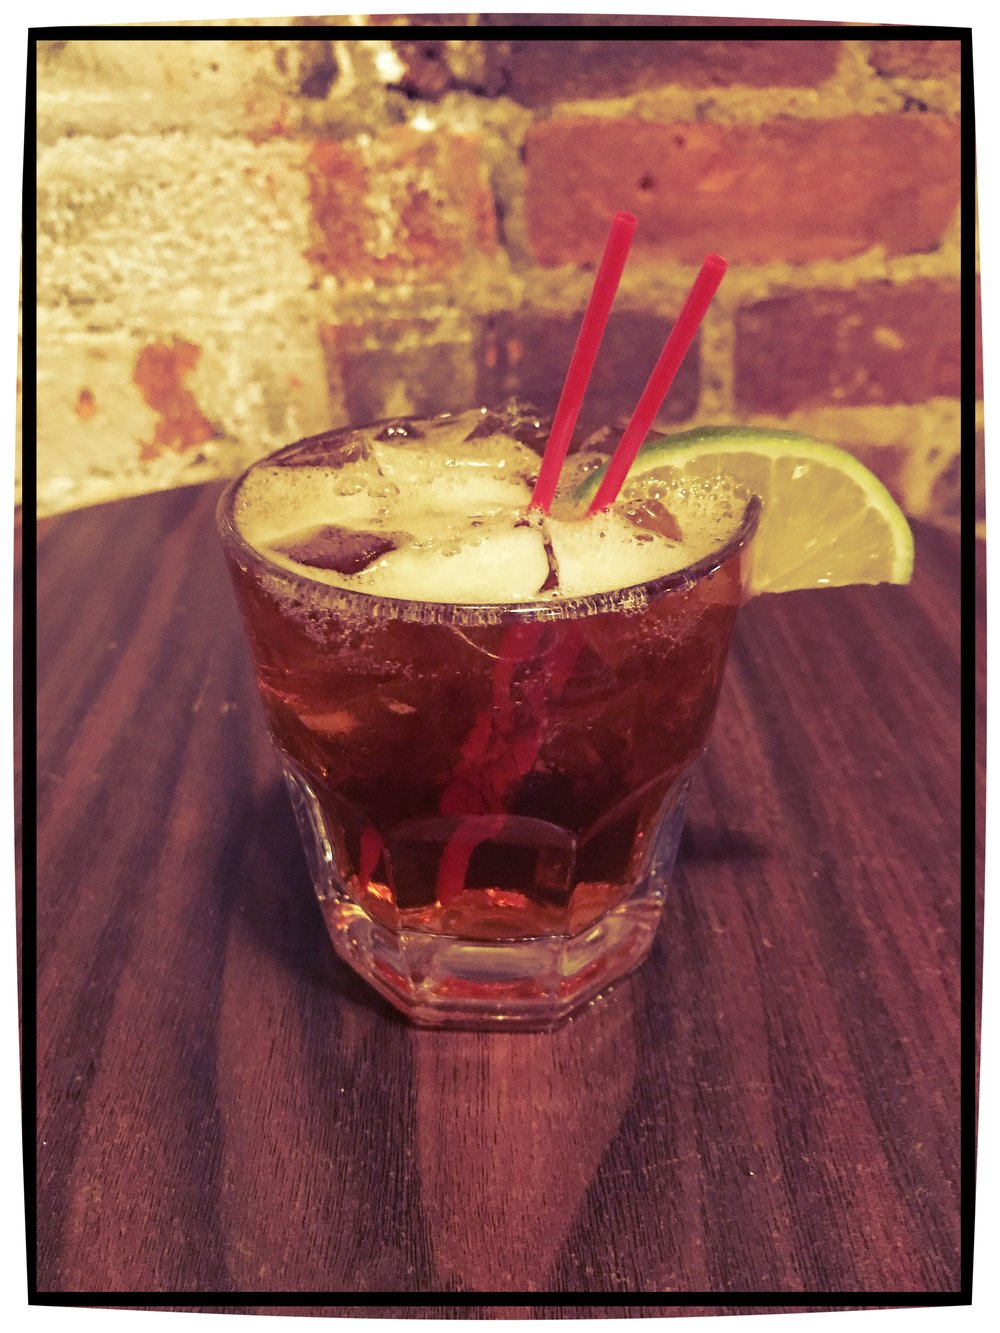 Dark & Stormy $8 - Gosling's Black Seal Rum, Ginger Beer,Lime Wedge